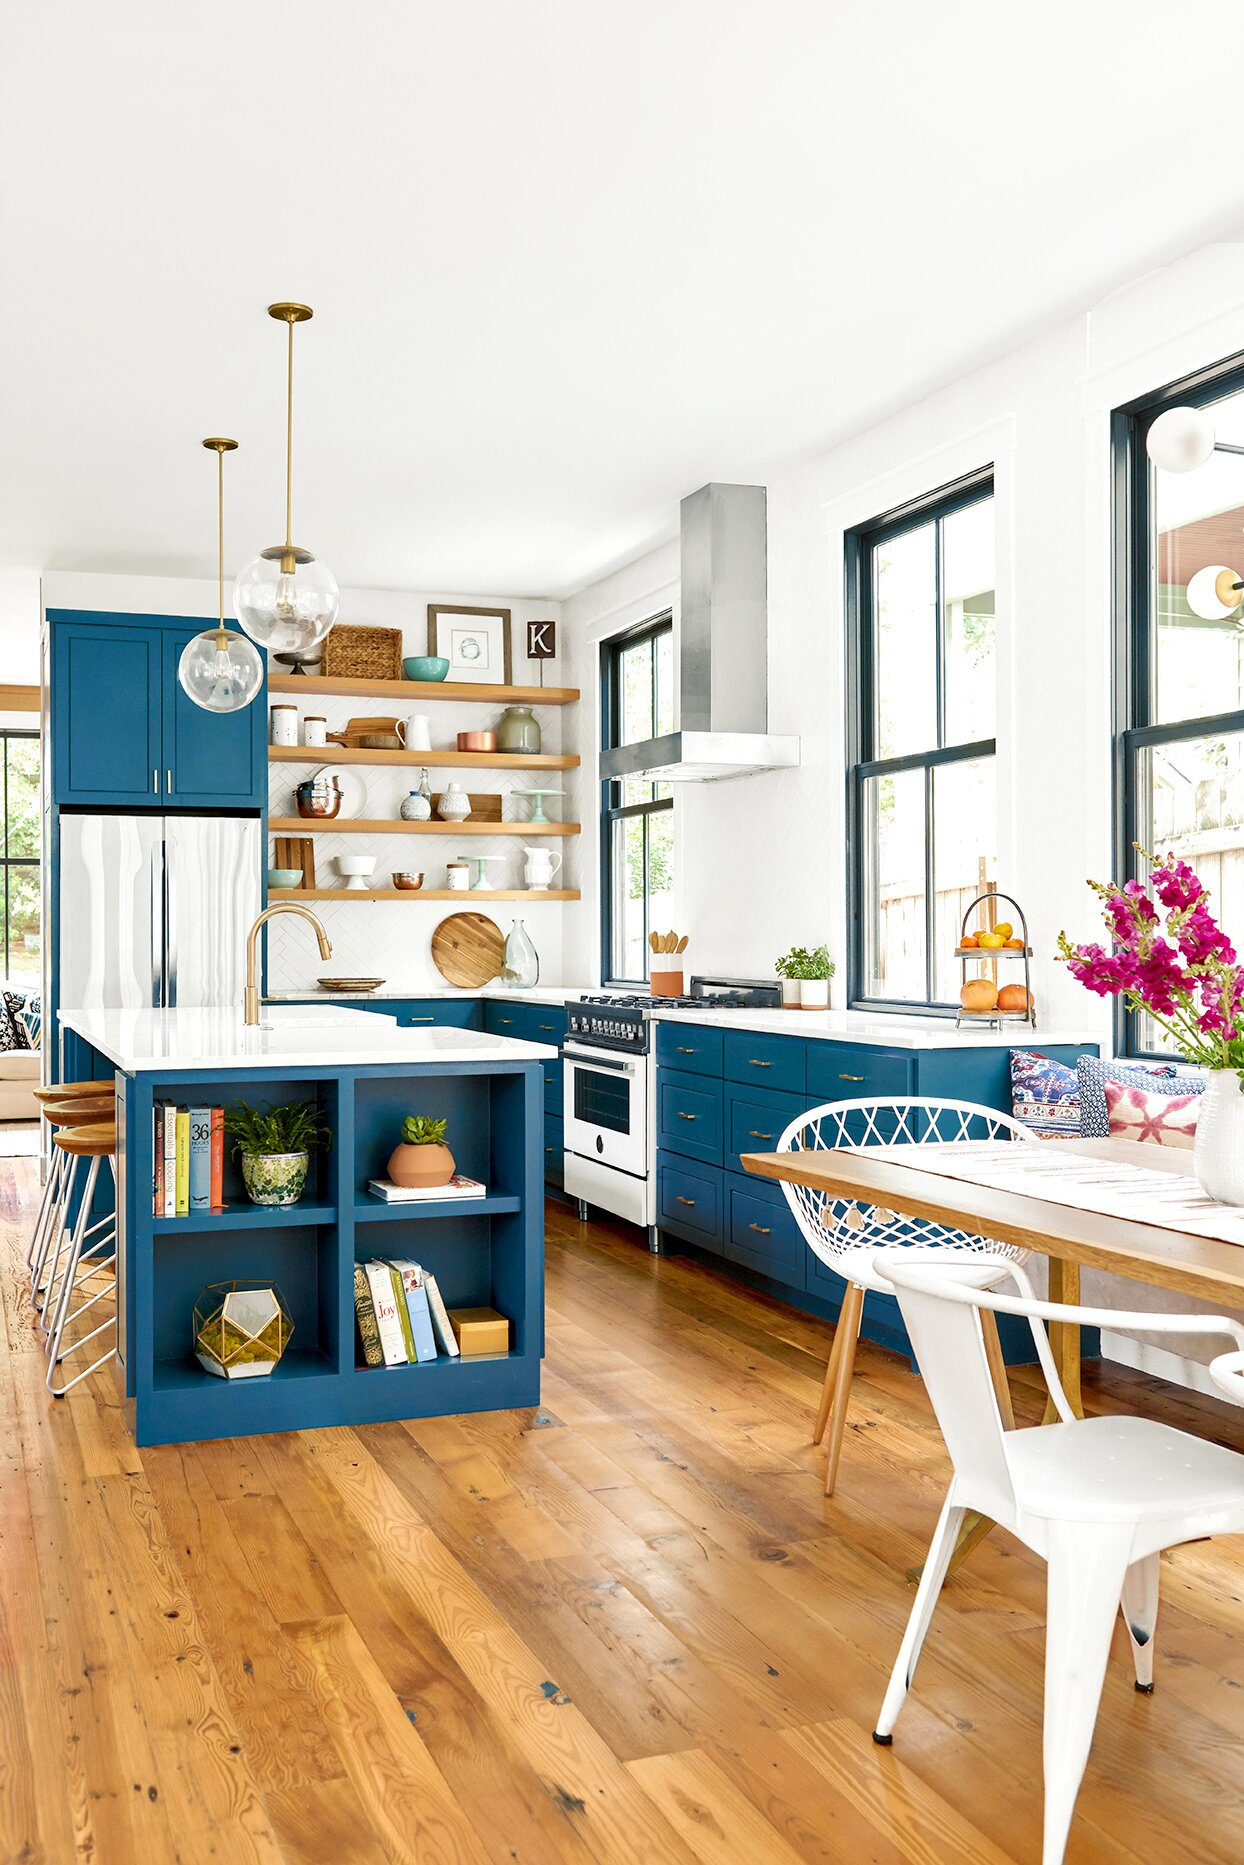 Kitchen with wooden floors and dark blue cabinets